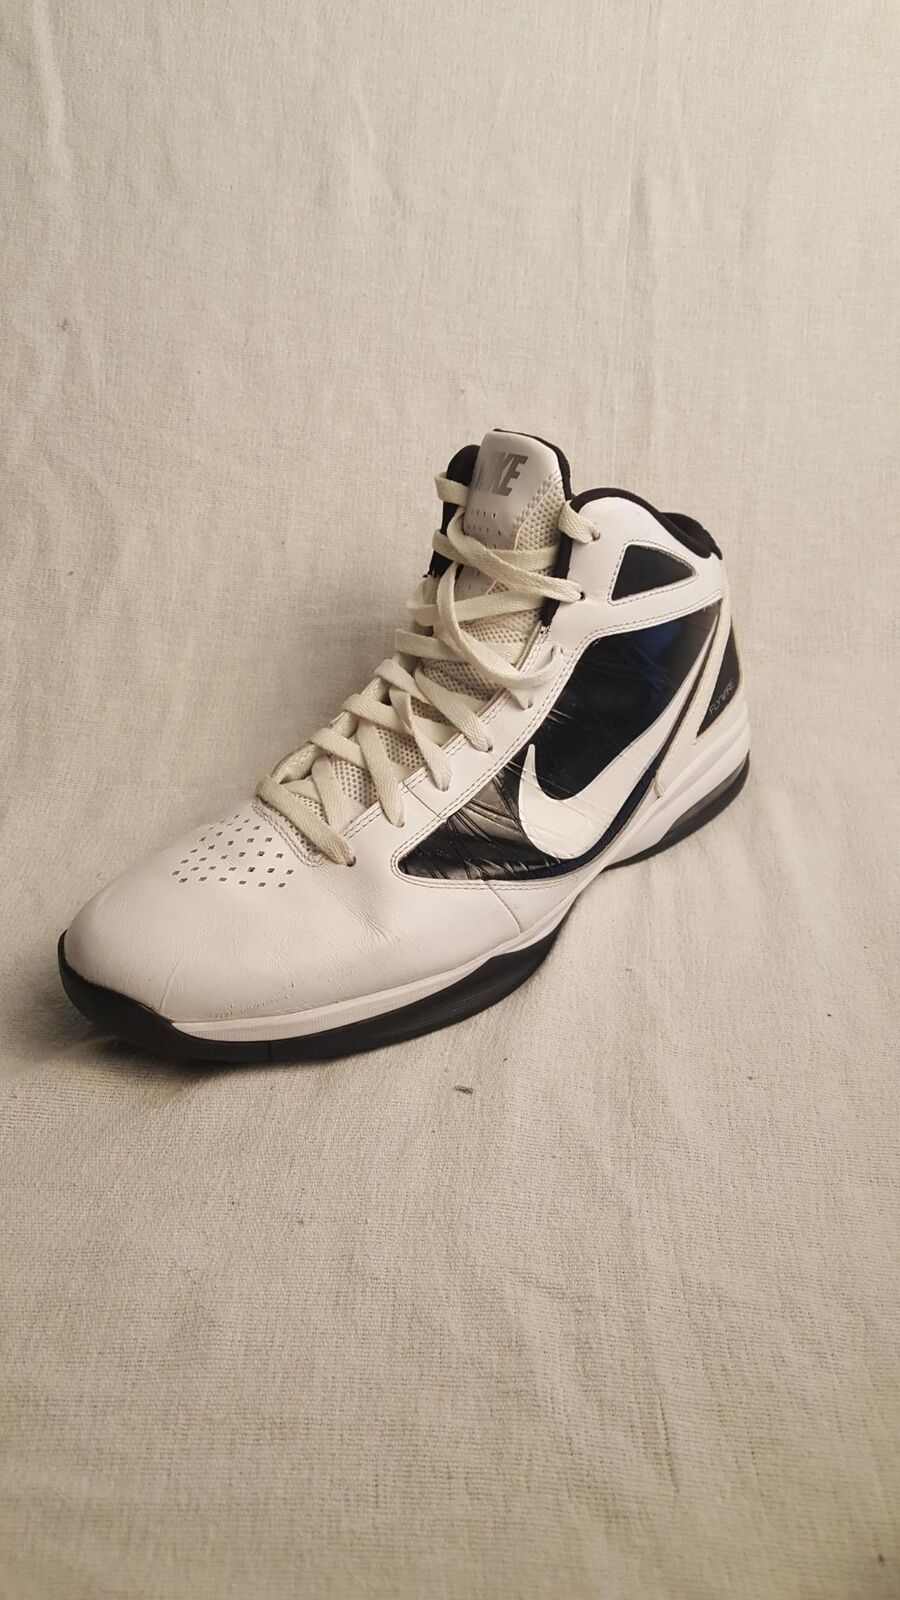 Men's Nike Zoom Hyperdunk 2011 TB White/Black 454140-100 (Size:13.5)